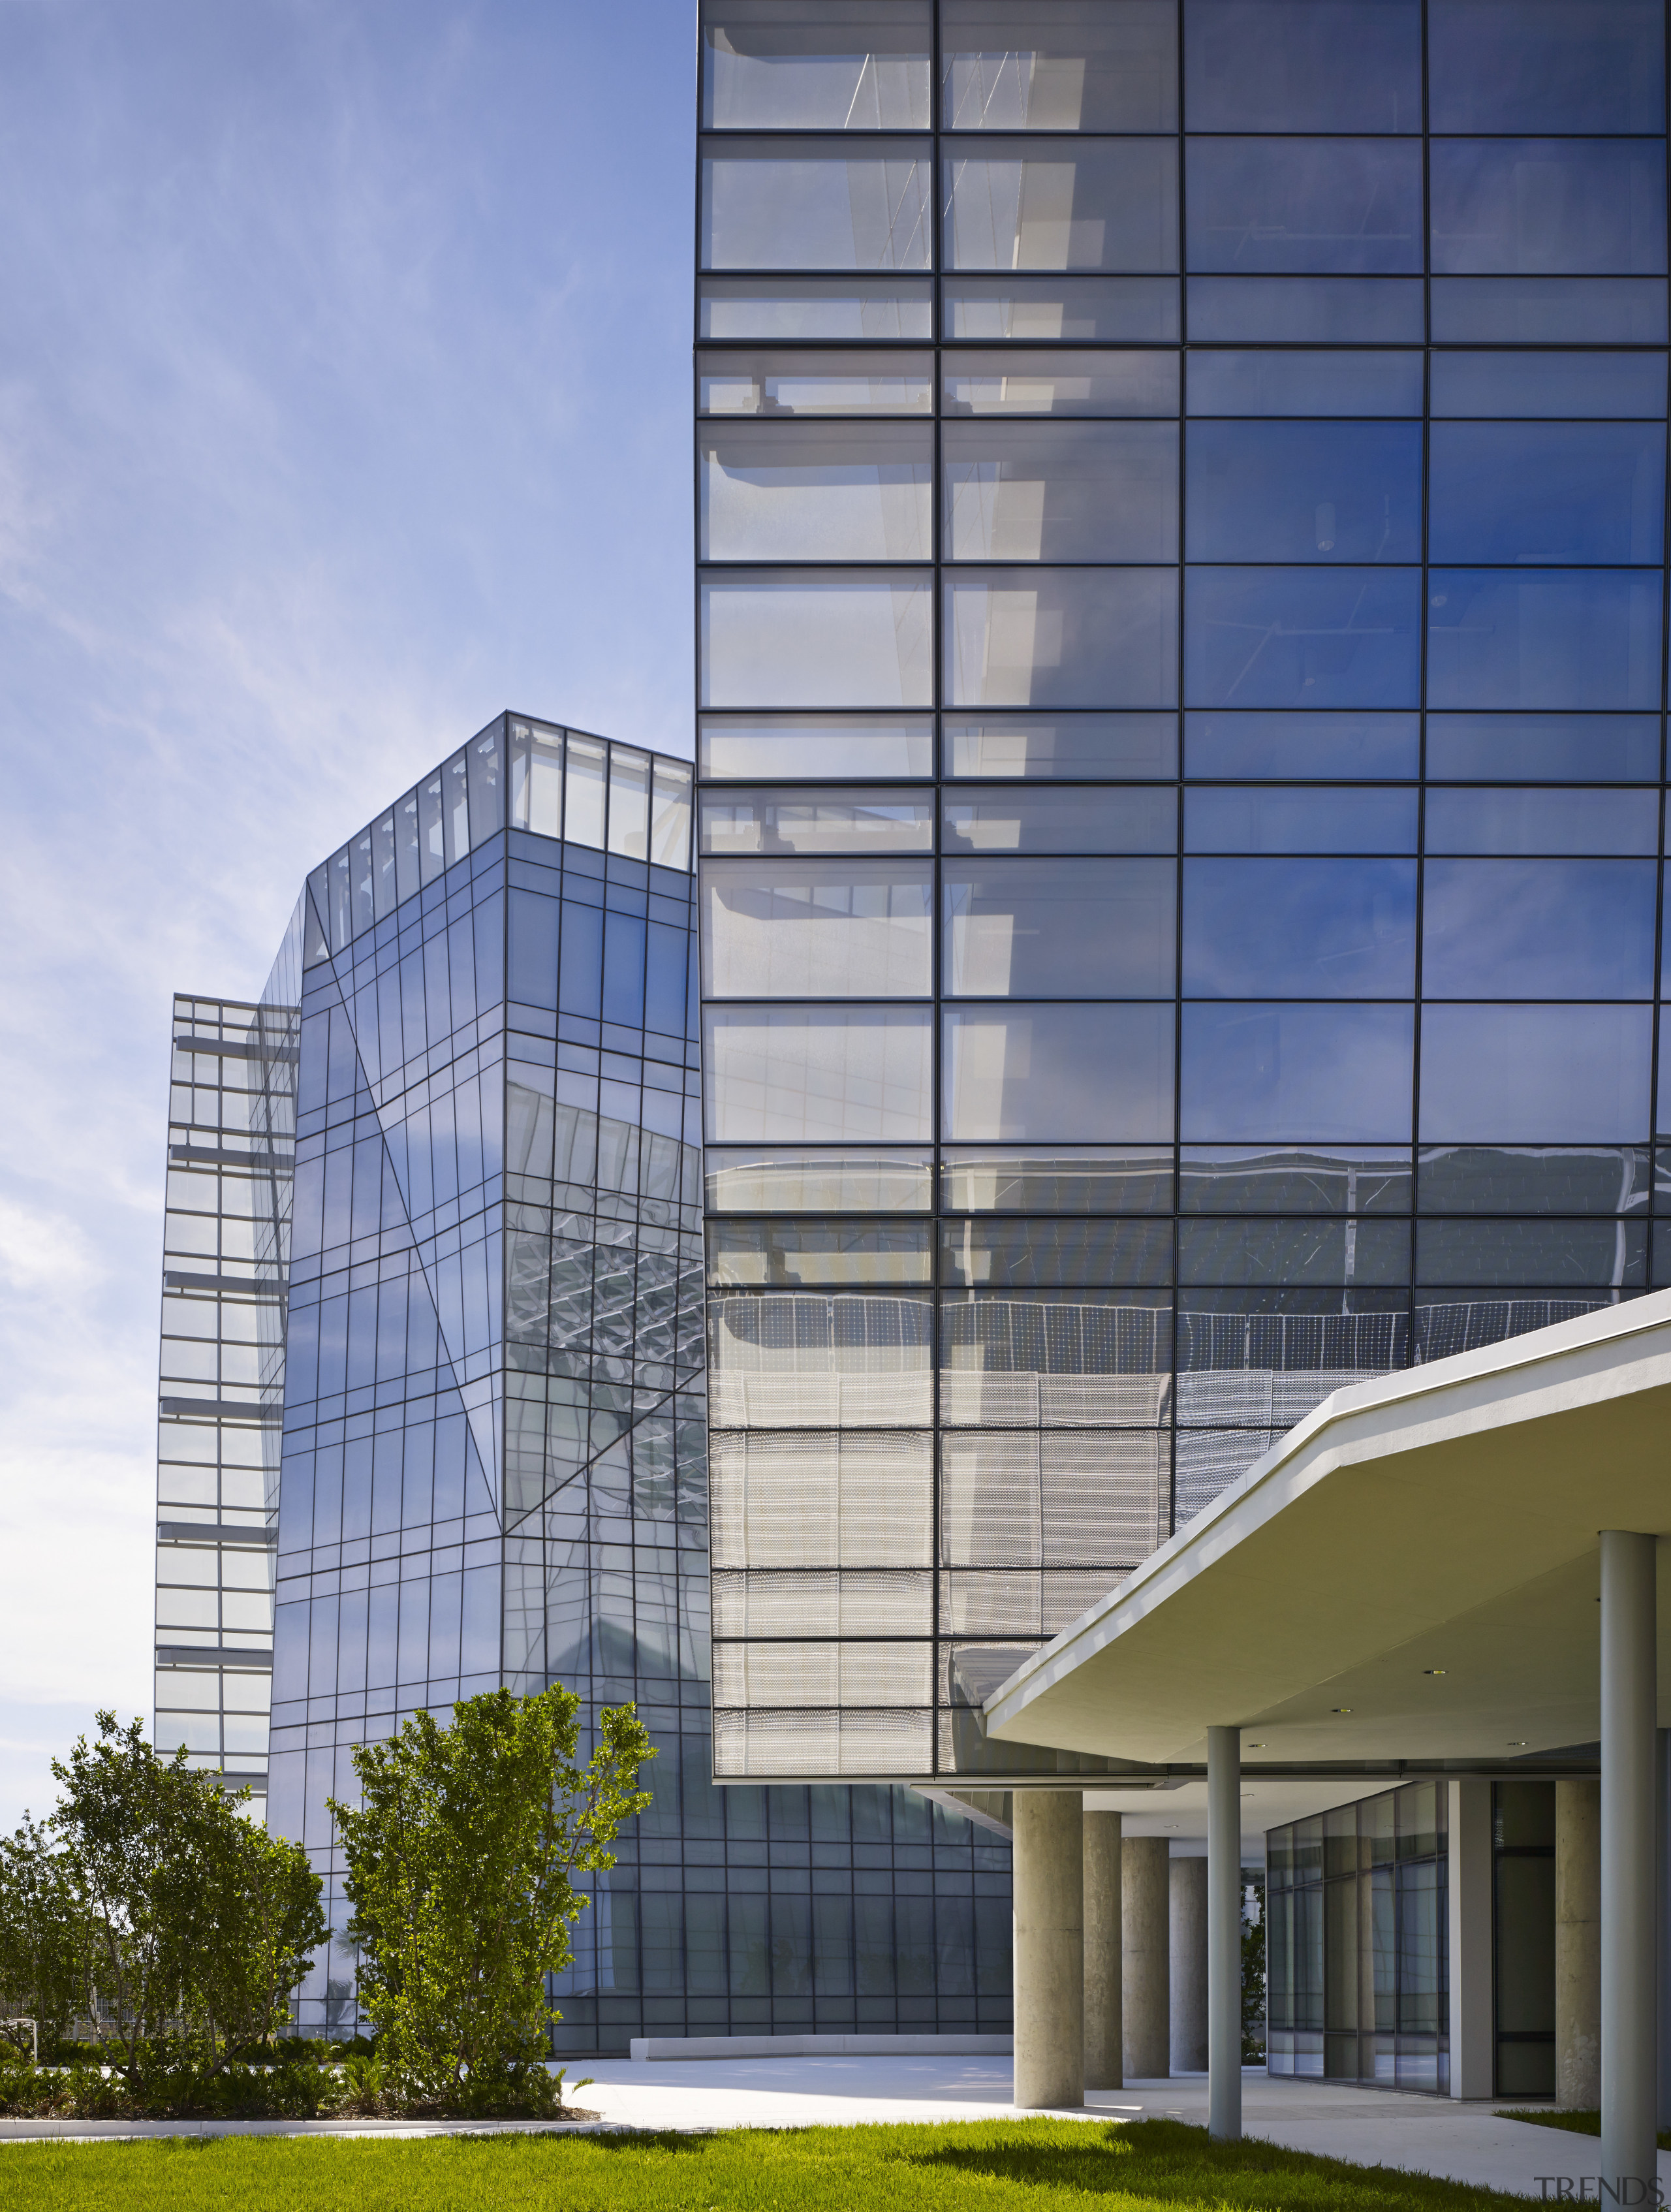 The reflective glass facade of the new Federal apartment, architecture, building, commercial building, condominium, corporate headquarters, daylighting, daytime, elevation, facade, headquarters, metropolis, metropolitan area, mixed use, real estate, residential area, sky, skyscraper, tower block, window, gray